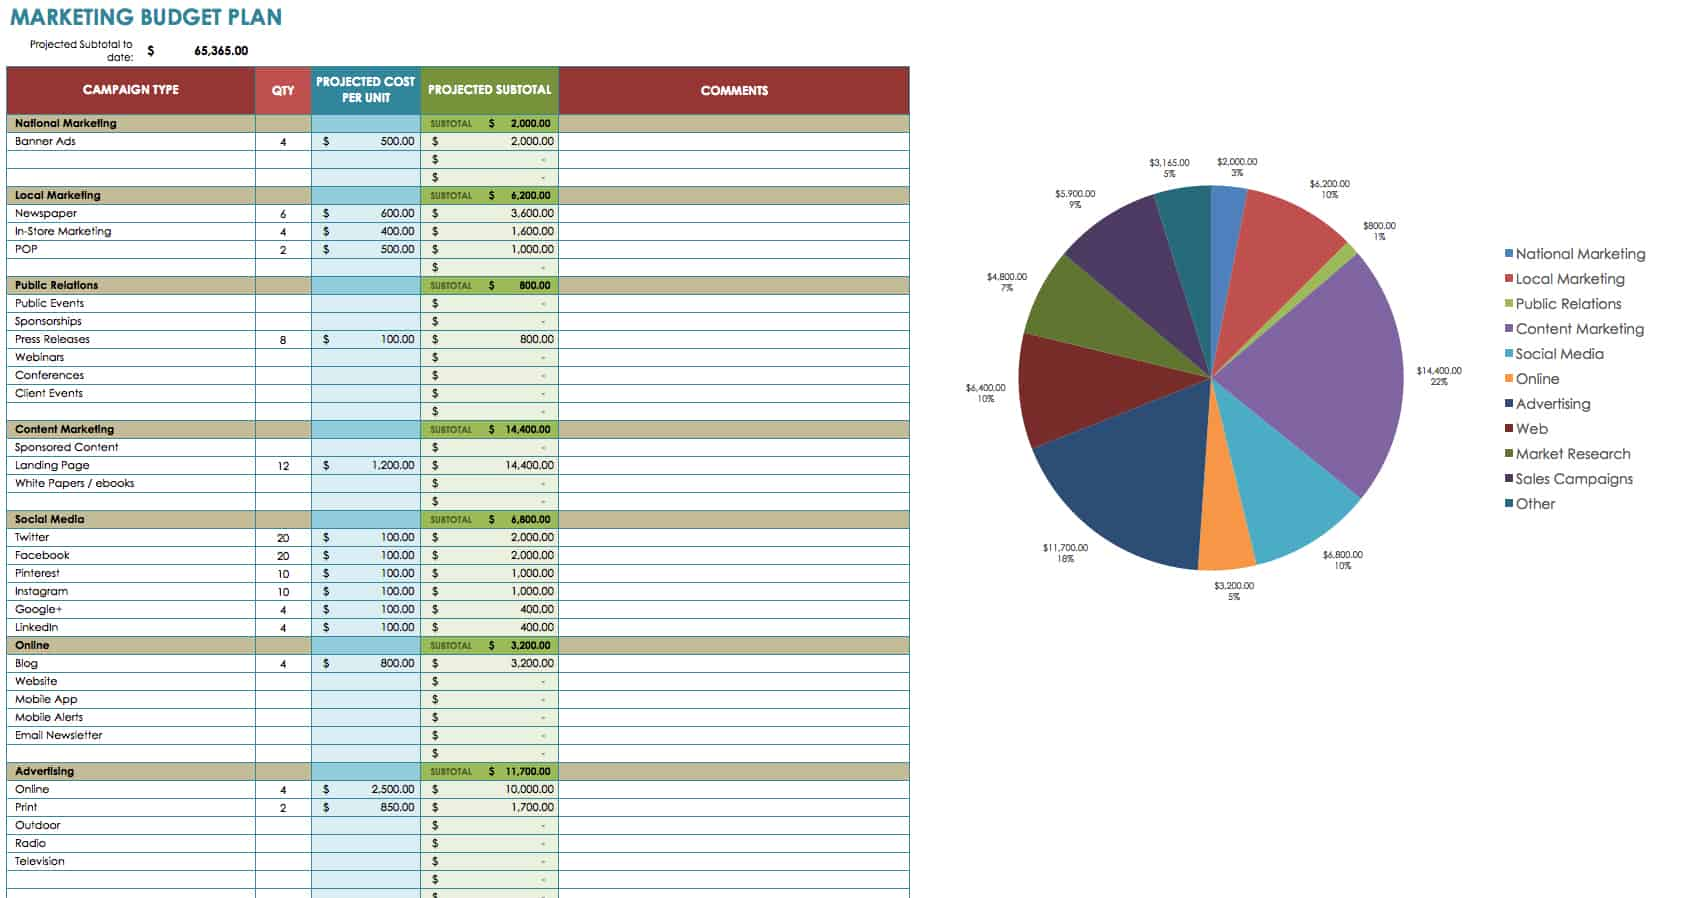 marketing budget templates this marketing budget plan template shows itemized categories an estimated cost for each item subtotals for each category and a grand total